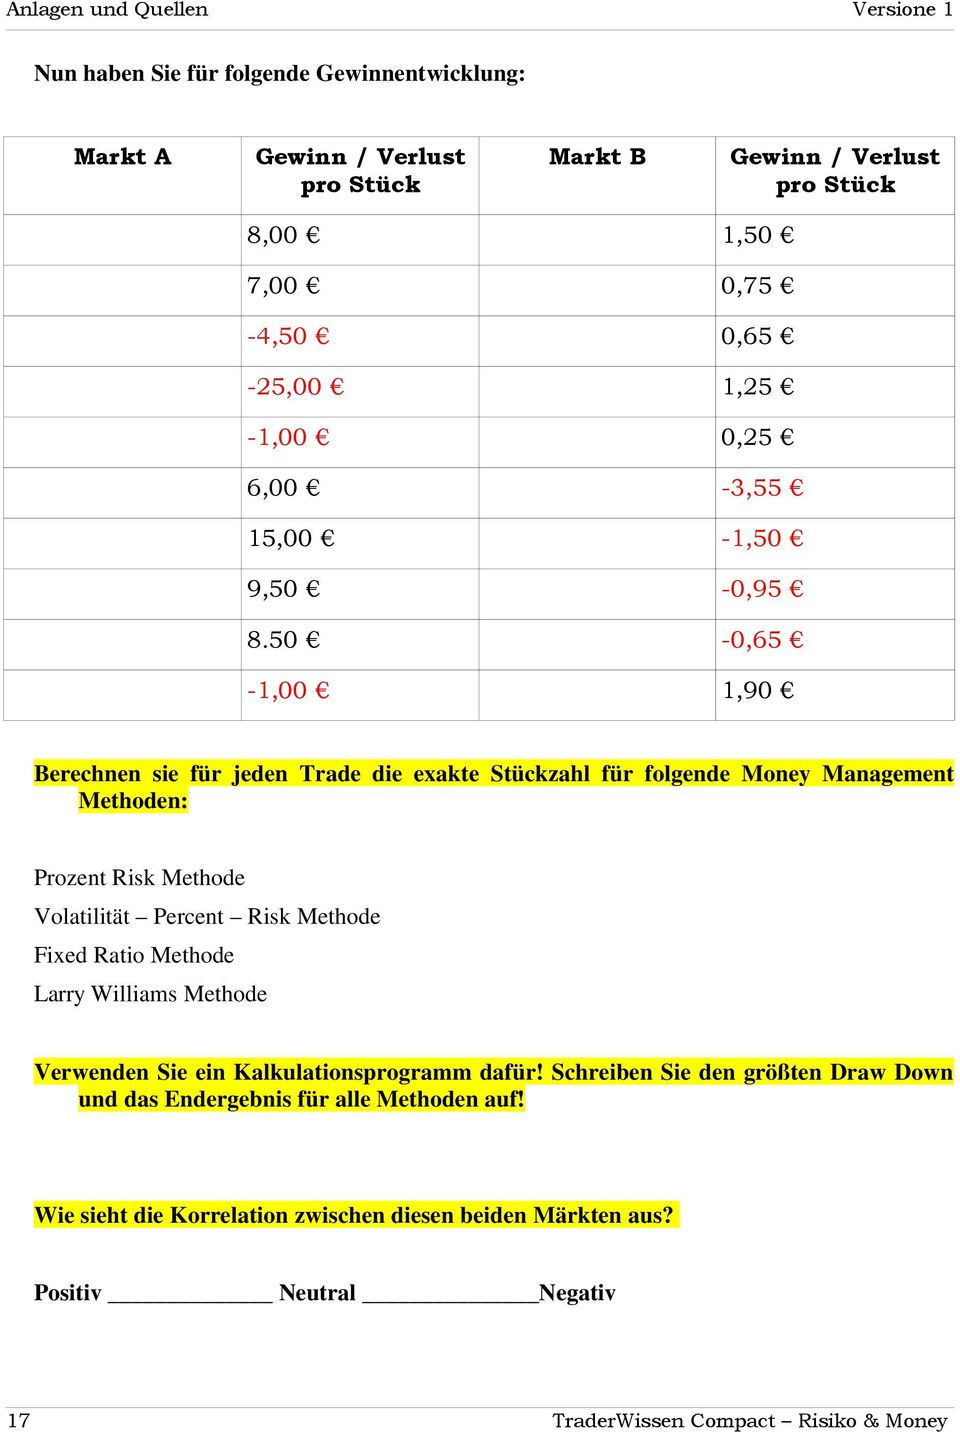 50-0,65-1,00 1,90 Berechnen sie für jeden Trade die exakte Stückzahl für folgende Money Management Methoden: Prozent Risk Methode Volatilität Percent Risk Methode Fixed